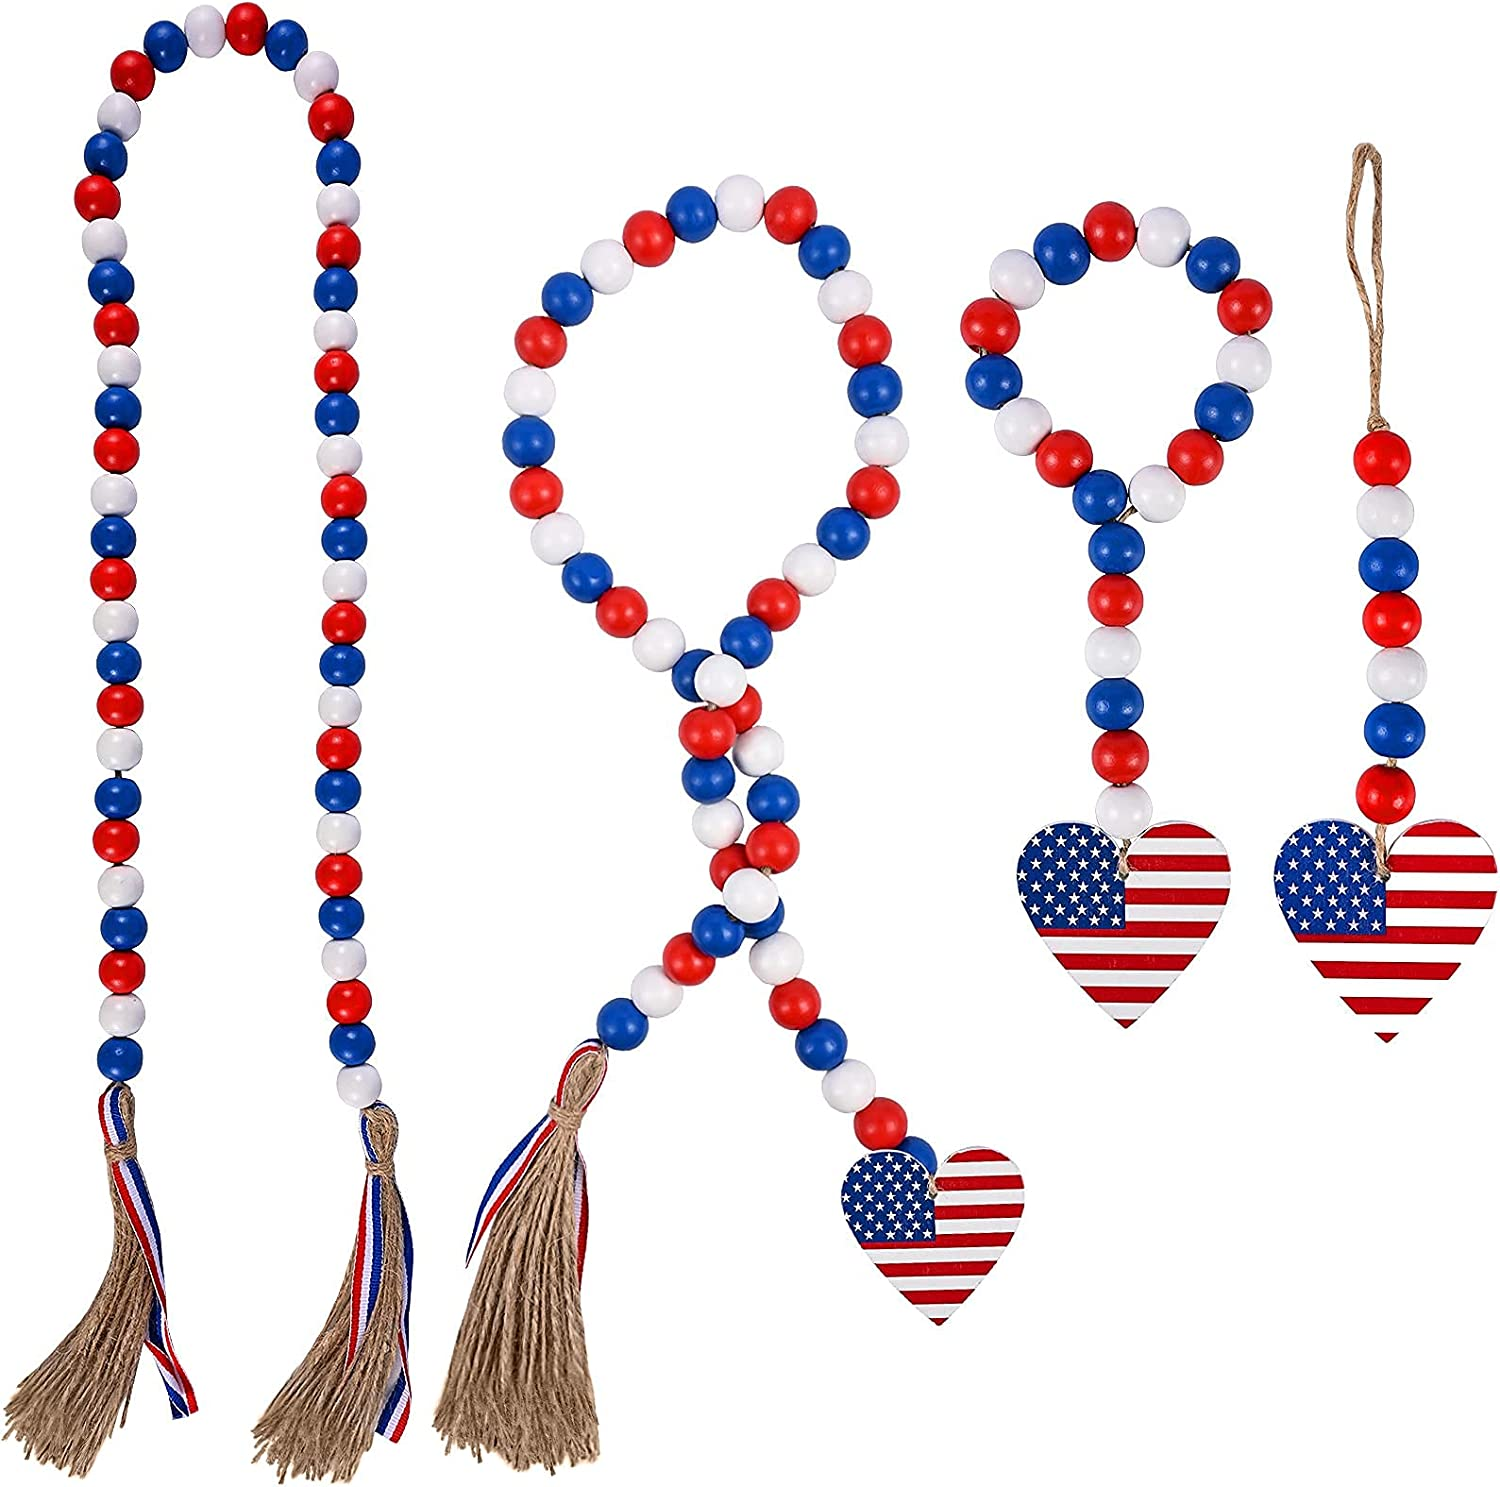 ZIIVARD 4 Pack Patriotic Independence Day Bead Garland, Wood Bead Tassel Garland with Heart Shape American National Flag Wood Decor for Independence Day 4th of July Decorations 39In+33In+13In+12In